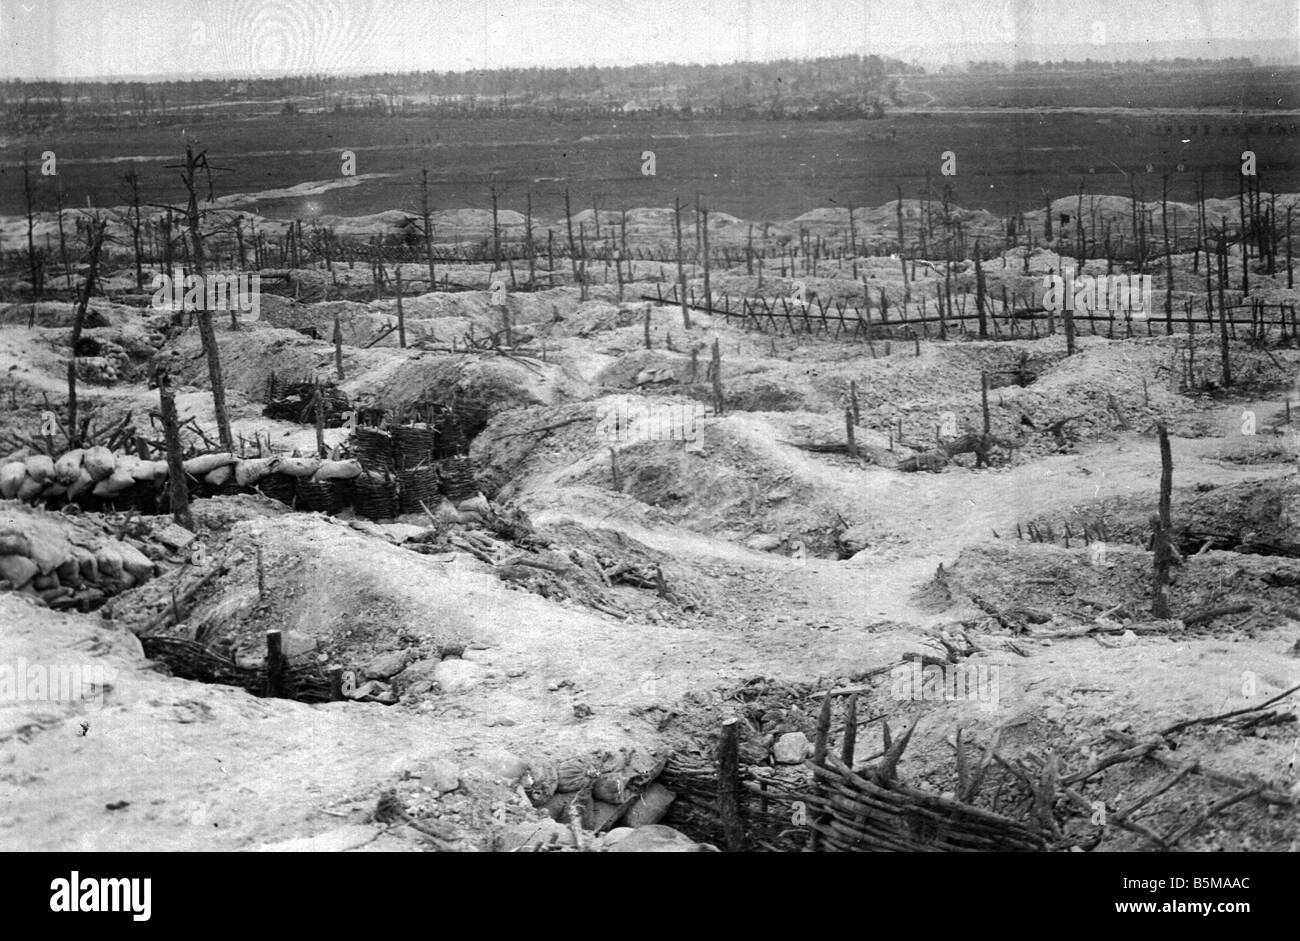 2 G55 W1 1915 21 E WWI German positions at Sabot 1915 History WWI Western Front German positions in the forest of - Stock Image